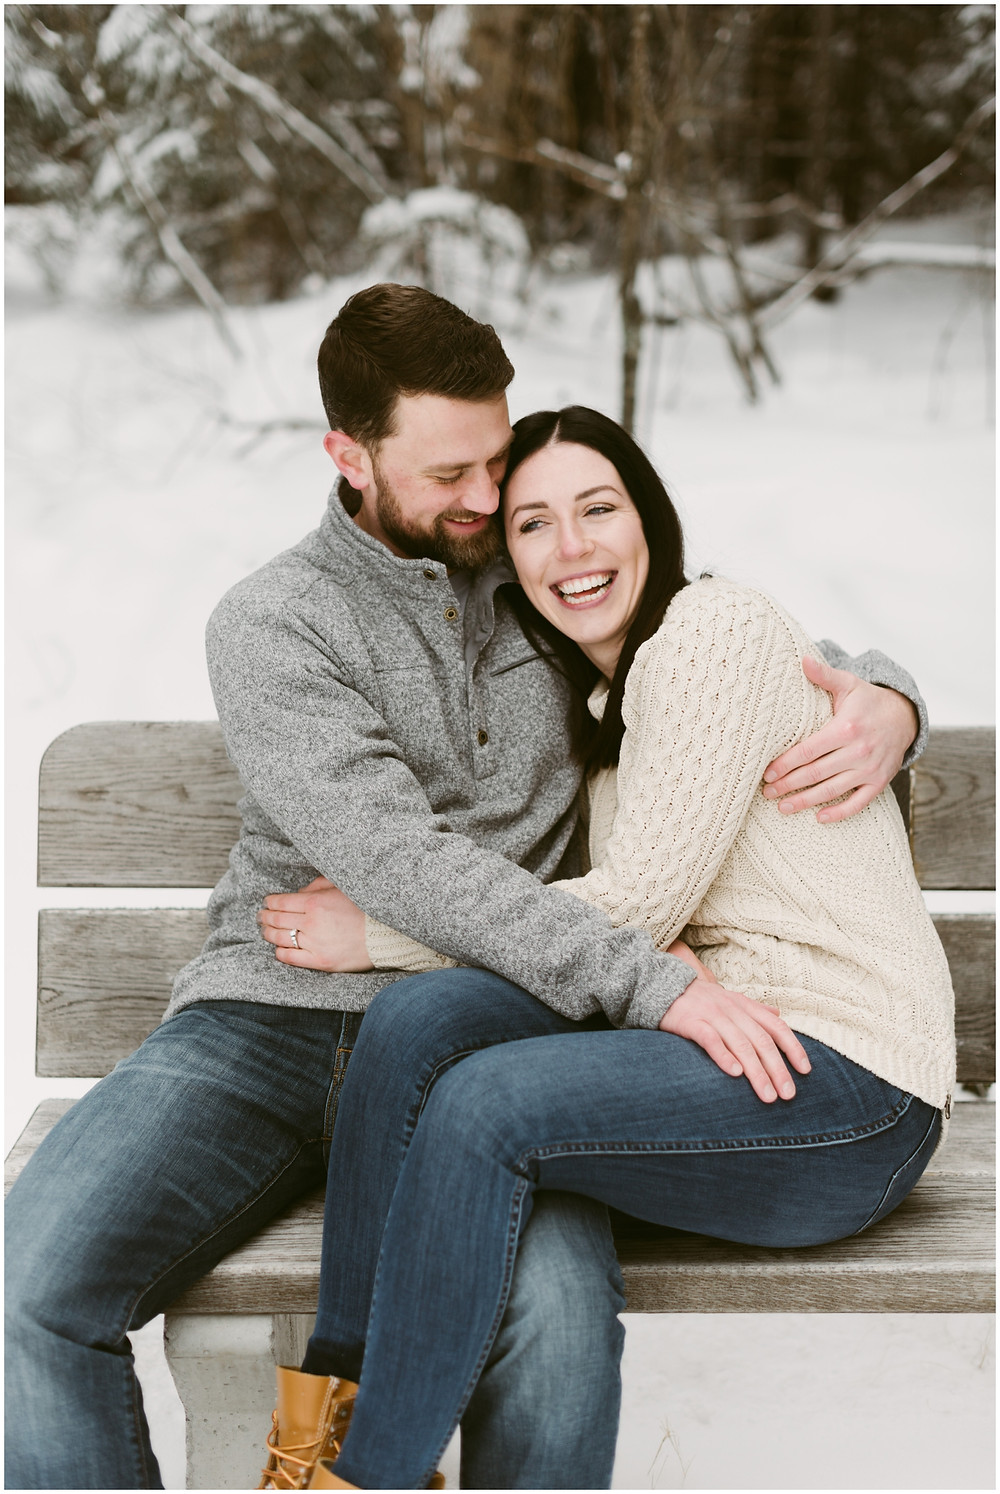 Upstate New York engagement photographer by Mountainaire Gatherings